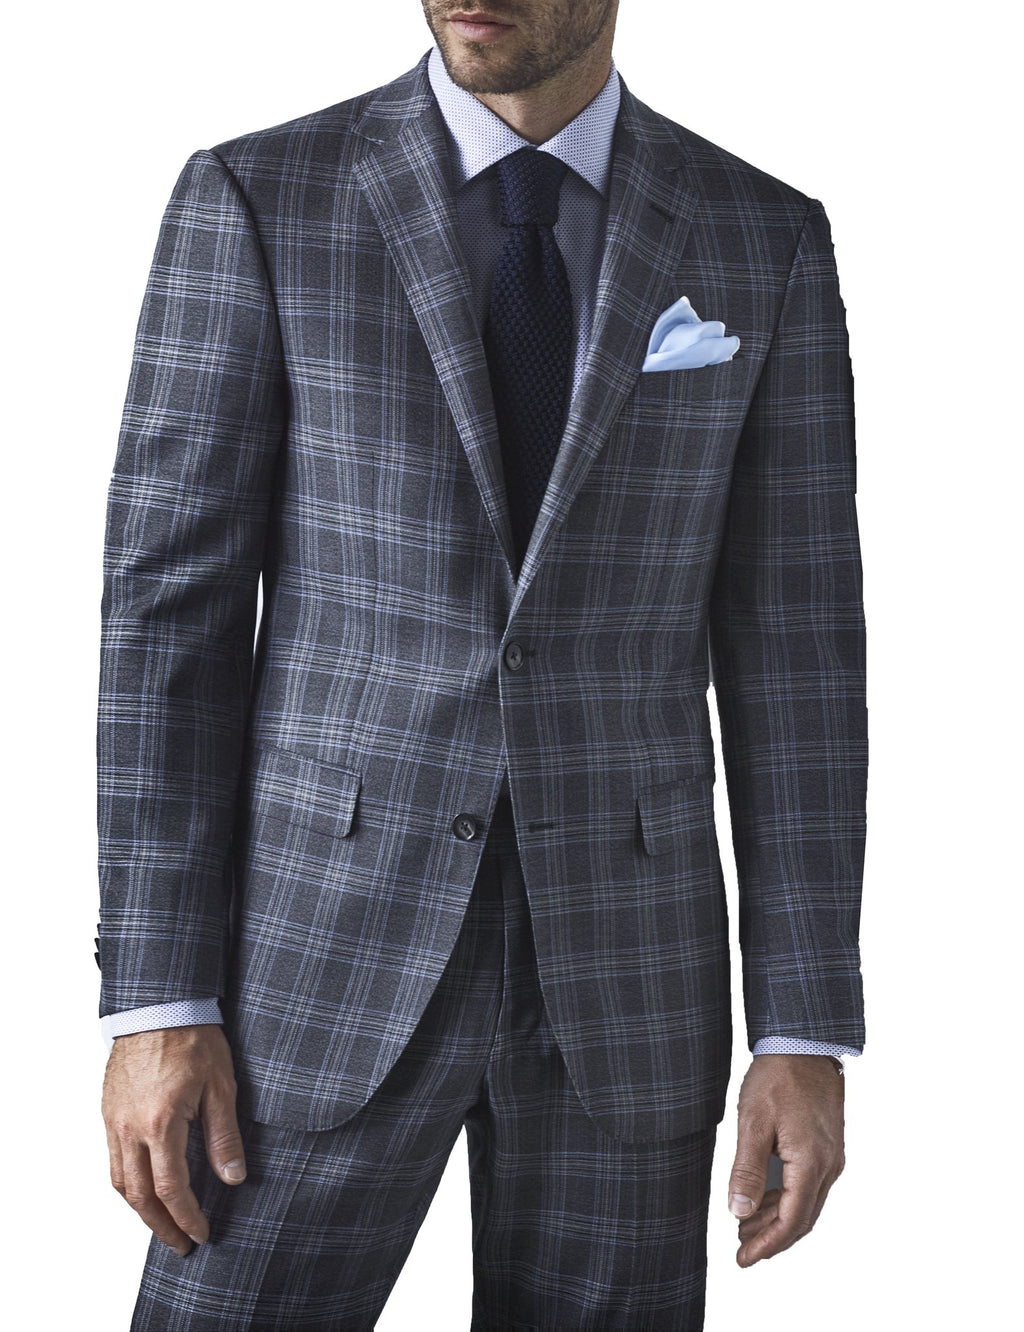 BB1621 - VITALE BARBERIS GREY WITH BLUE CHECK SUIT